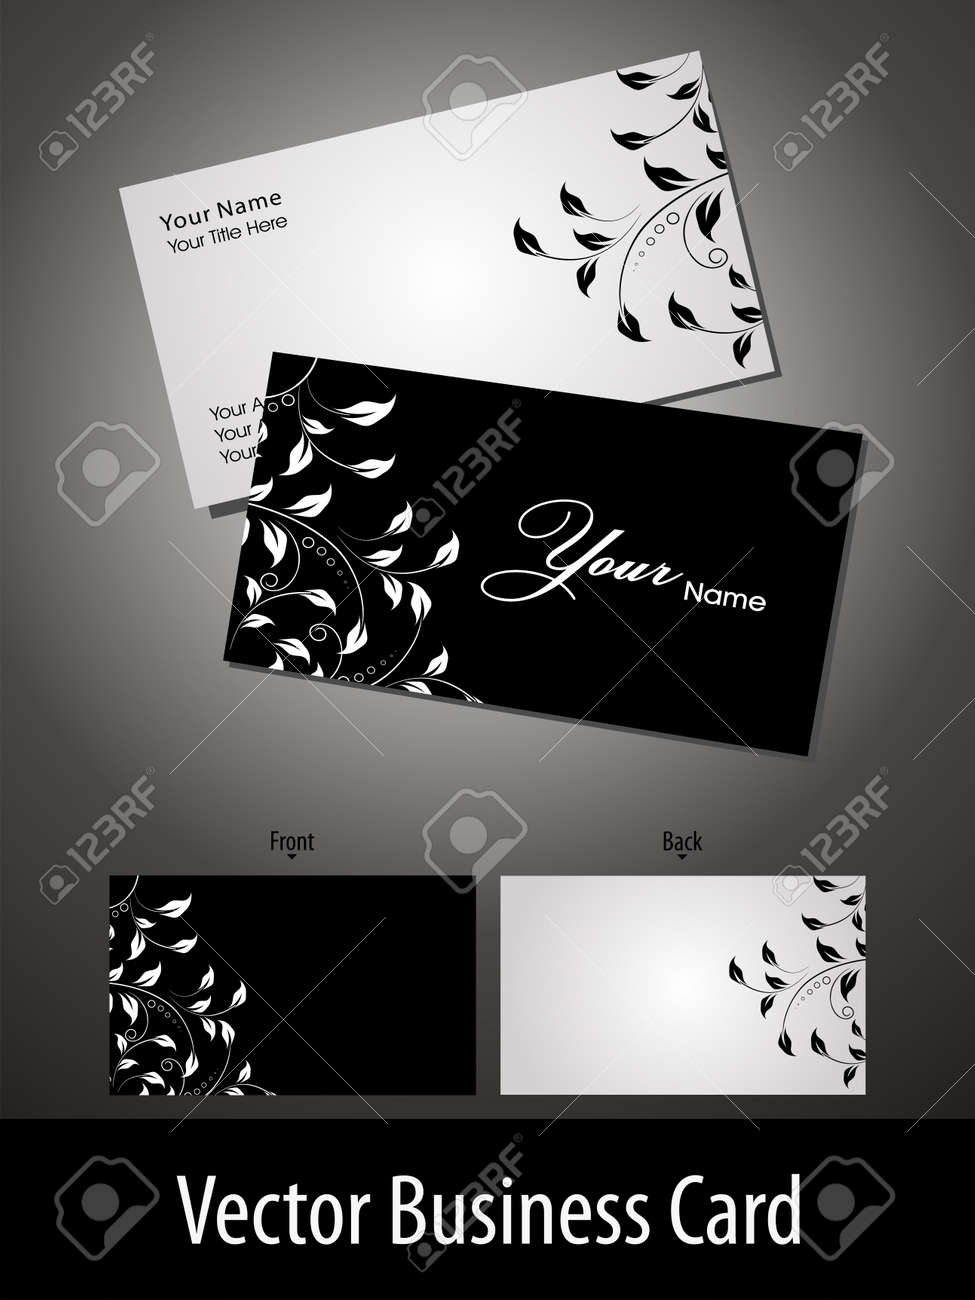 Vector Business Cards Or Gift Card With Elegant Floral Design ...